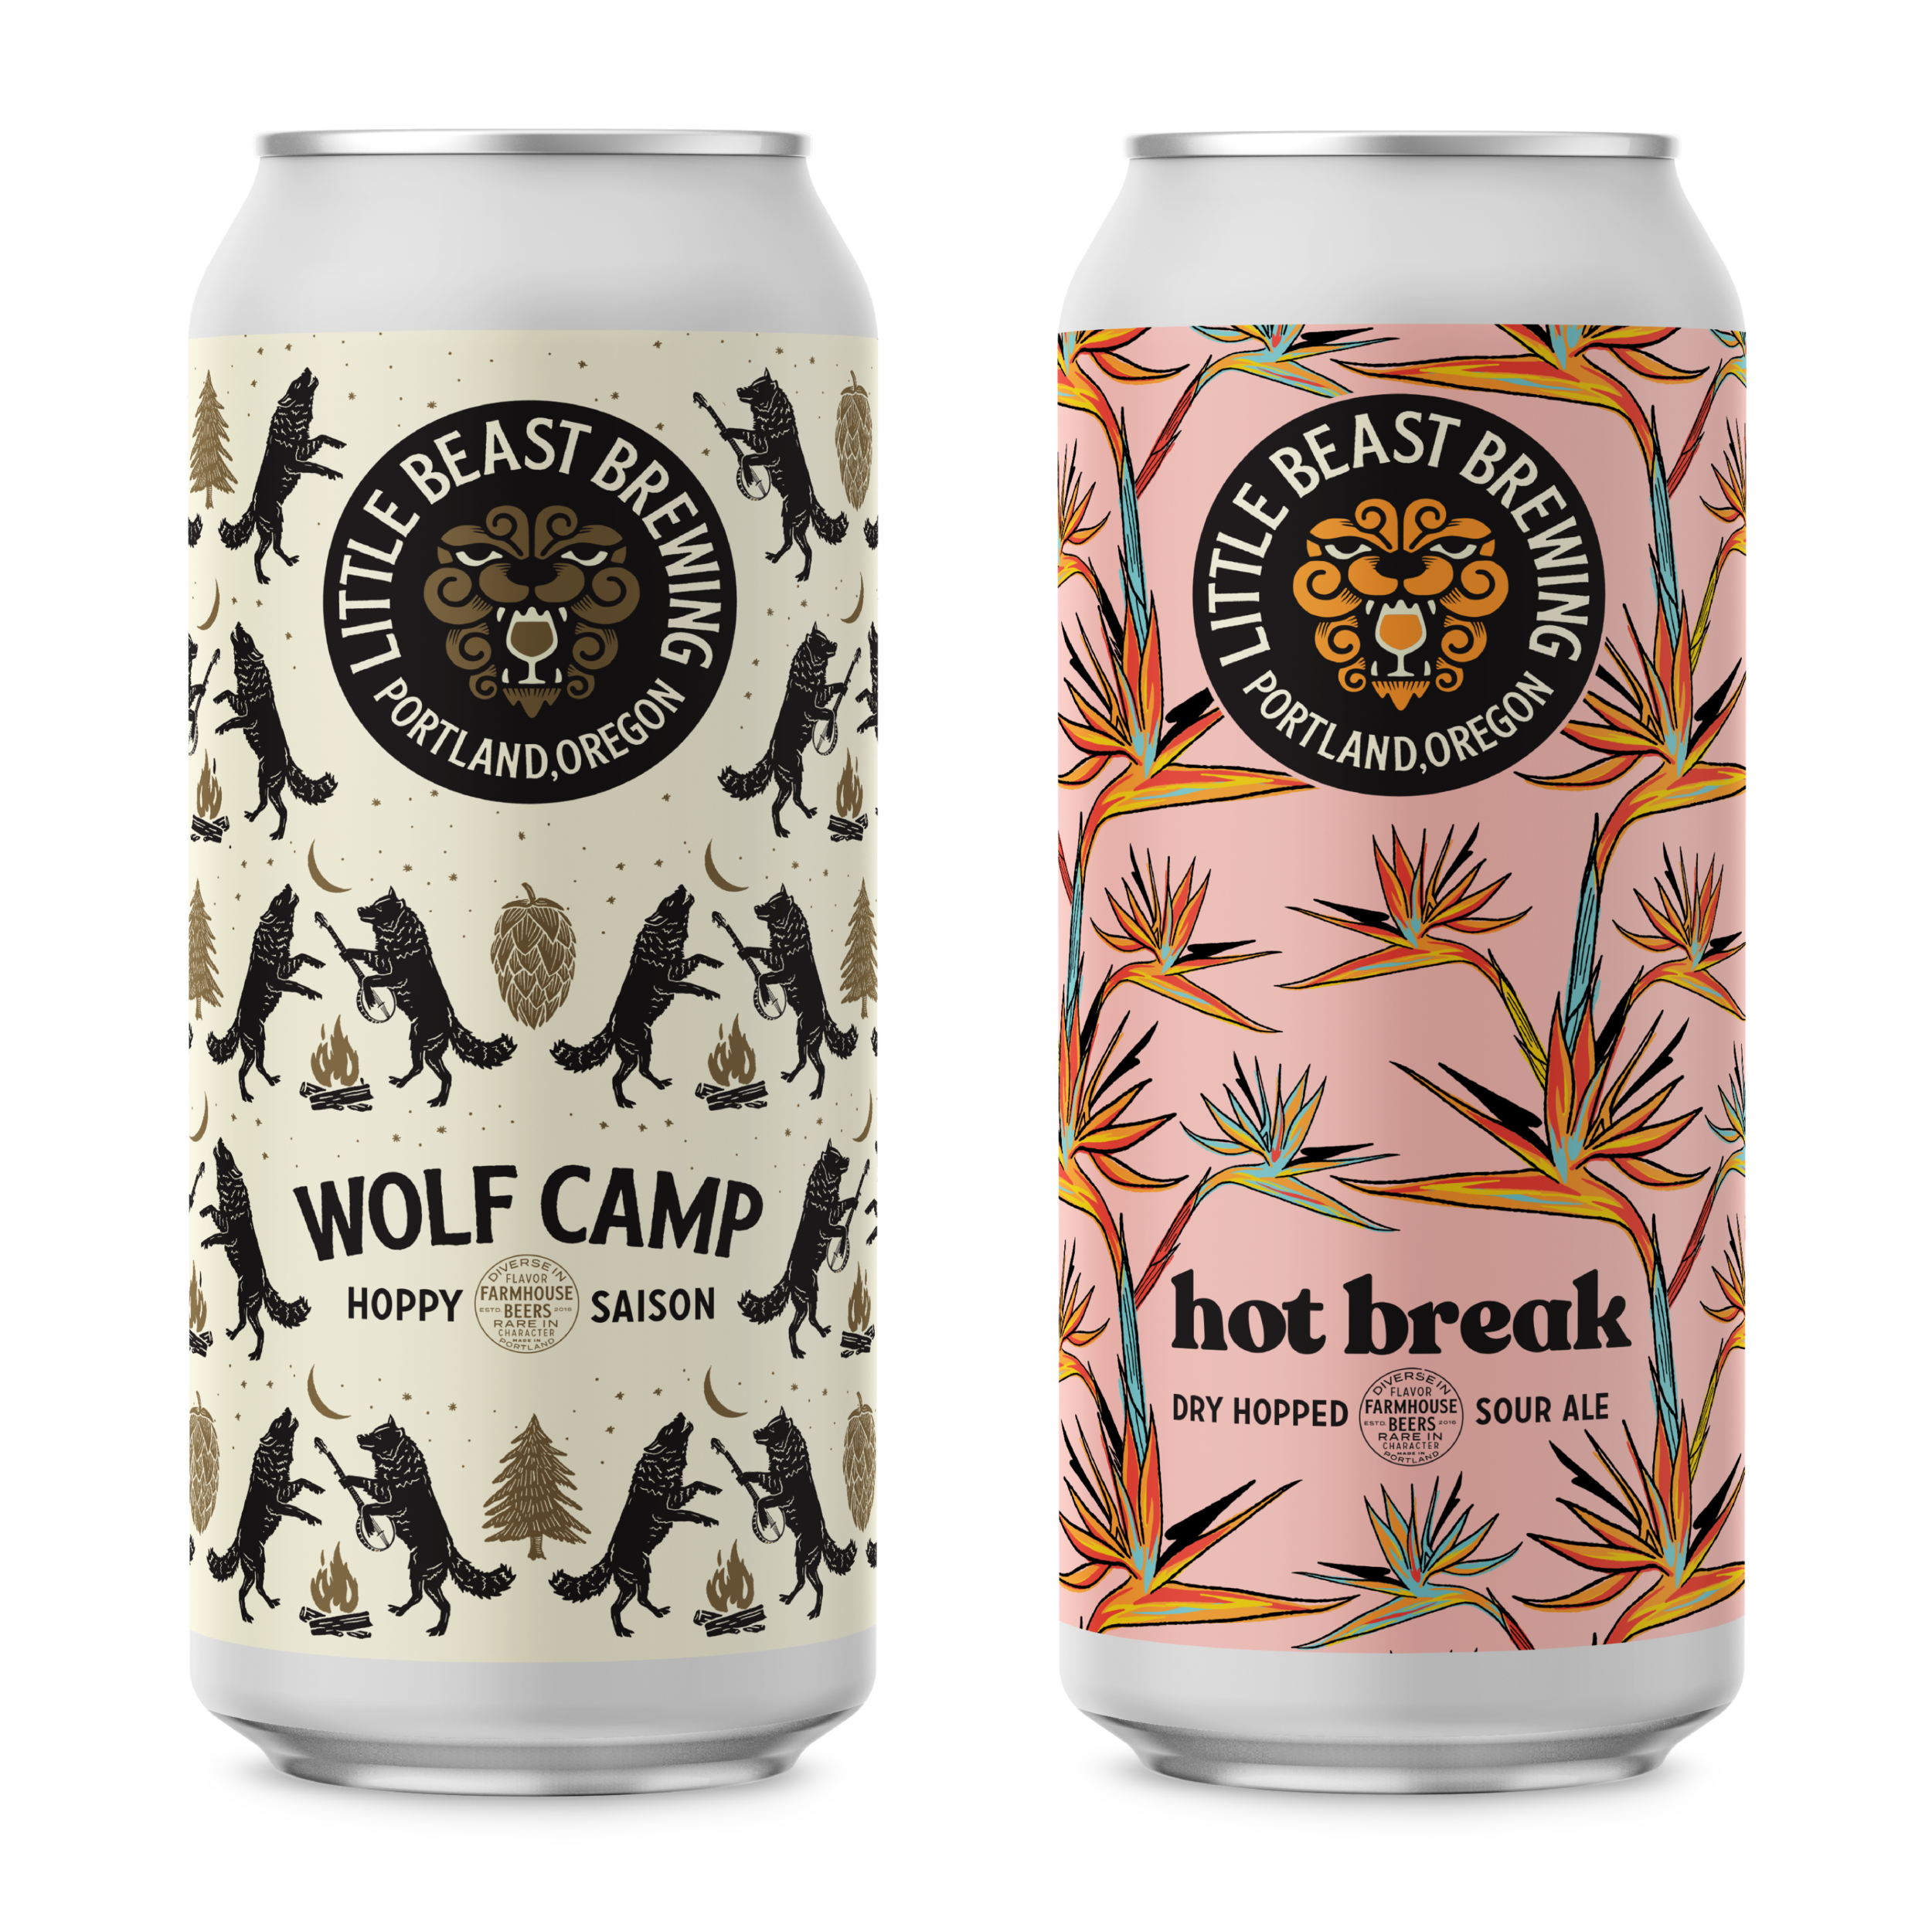 The 2 New Canned Offerings from Little Beast